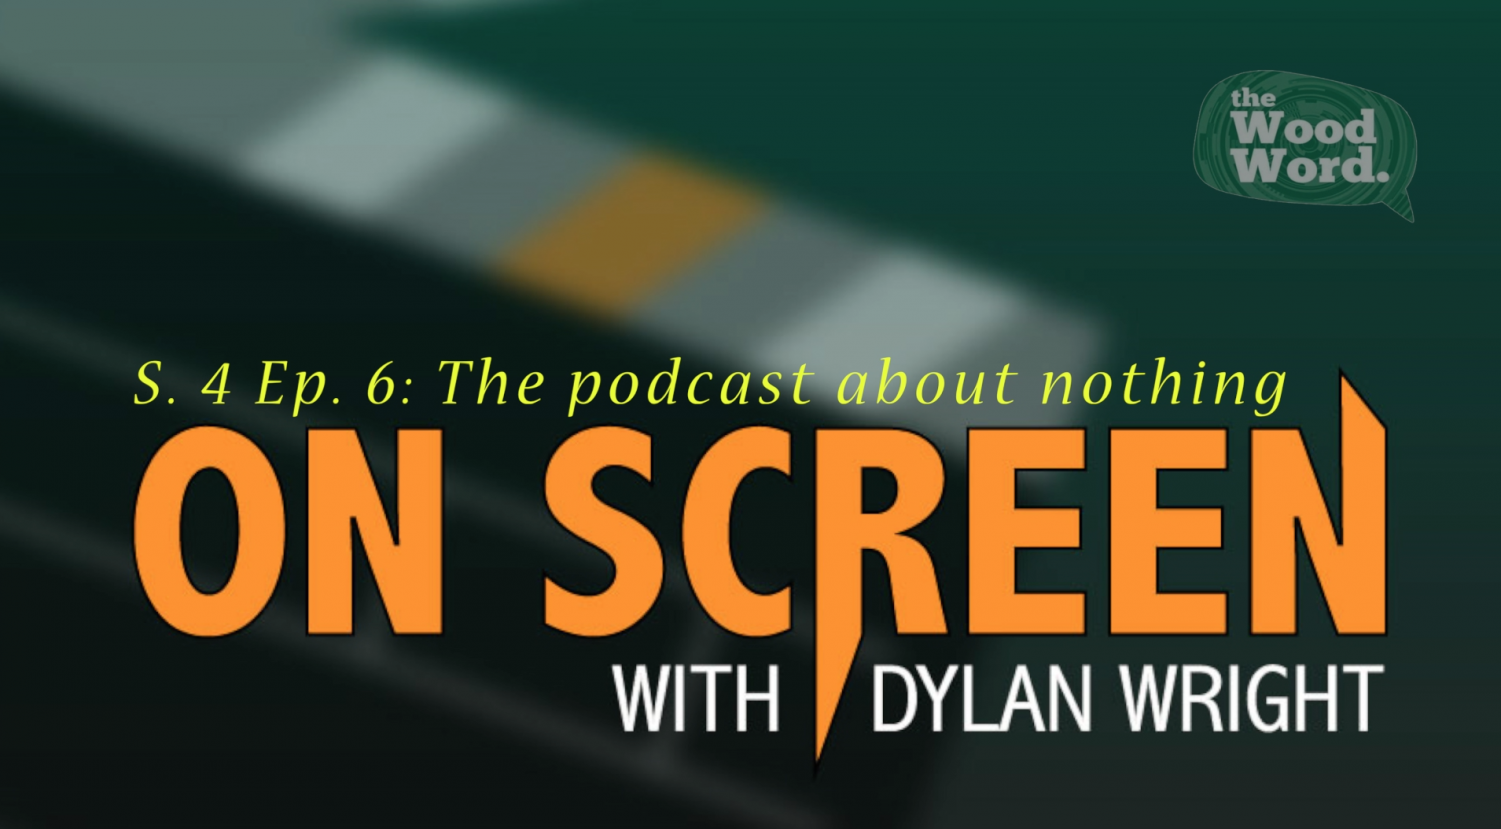 On Screen S. 4 Ep. 6: The Podcast About Nothing